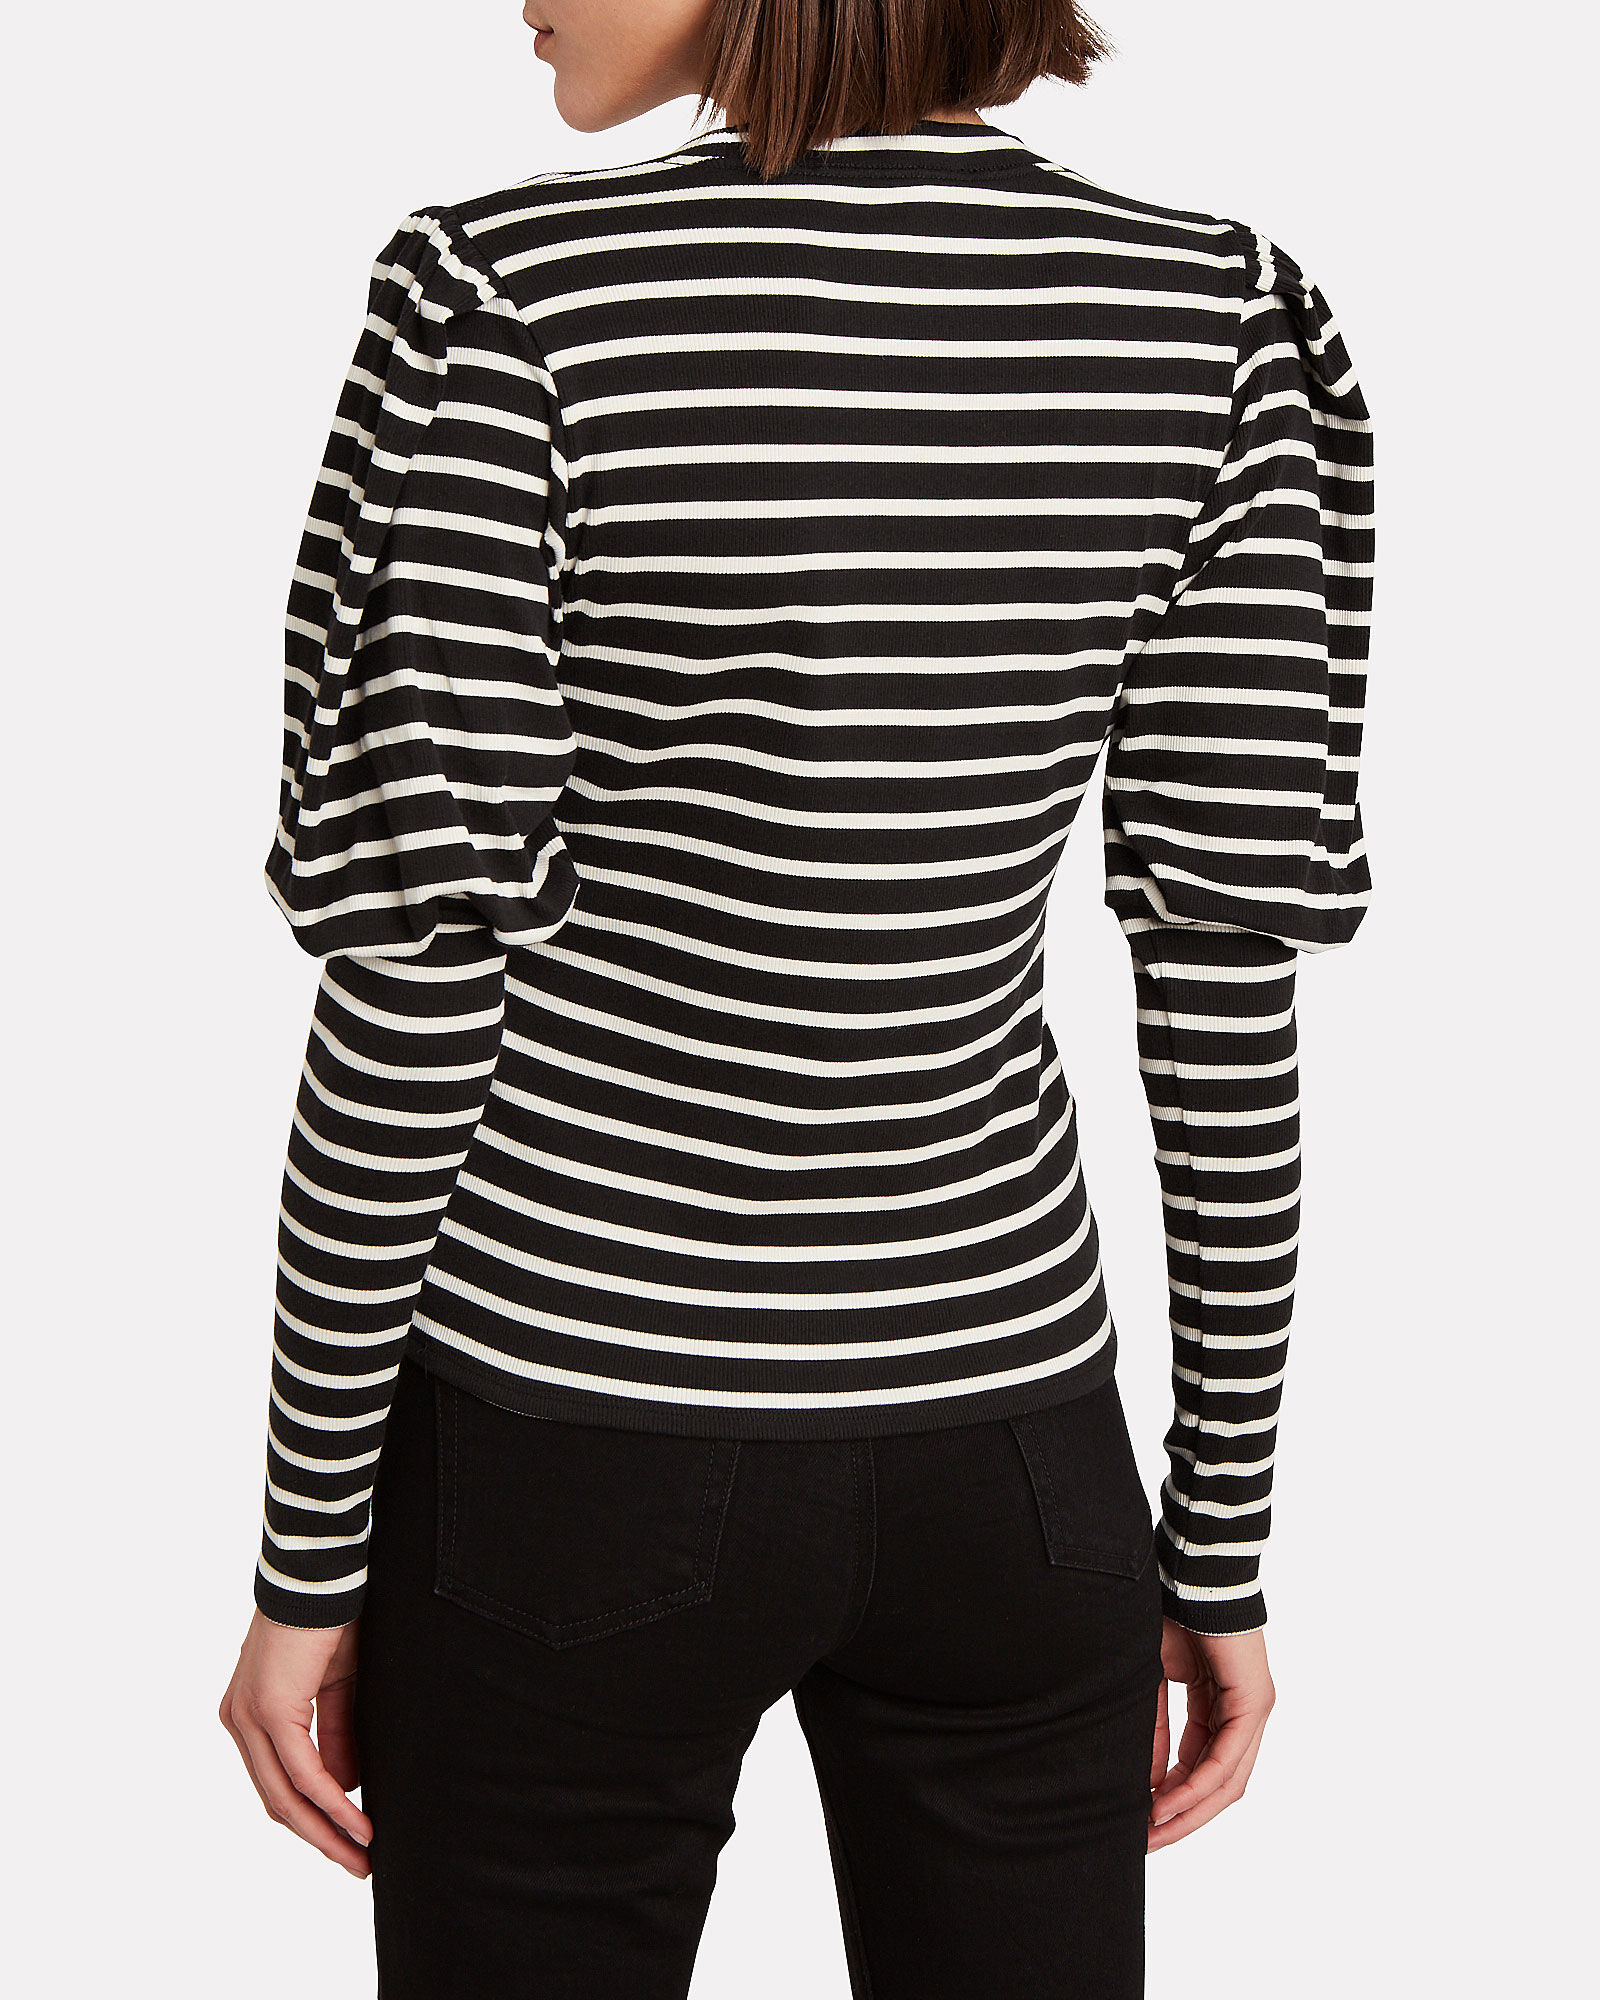 Lyon Striped Puff Sleeve Top, BLACK/WHITE, hi-res